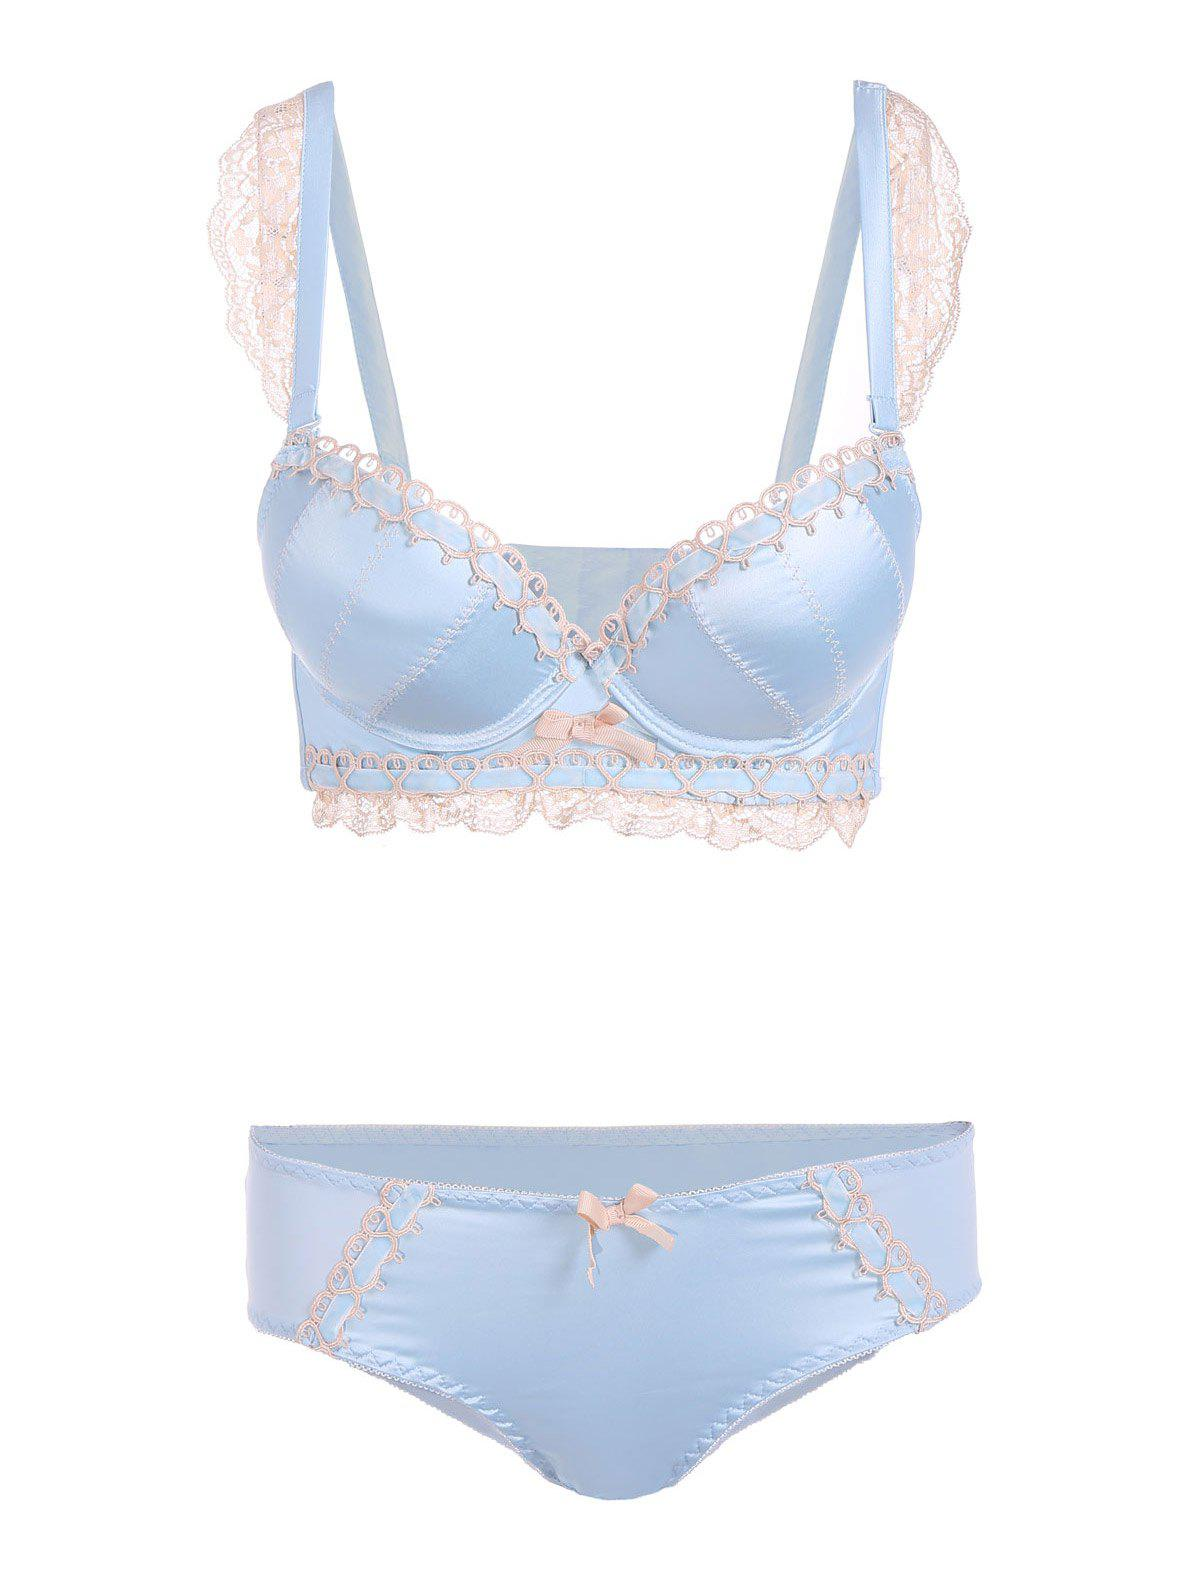 Padded Lace Embroidered Push Up Bra Set 197408305